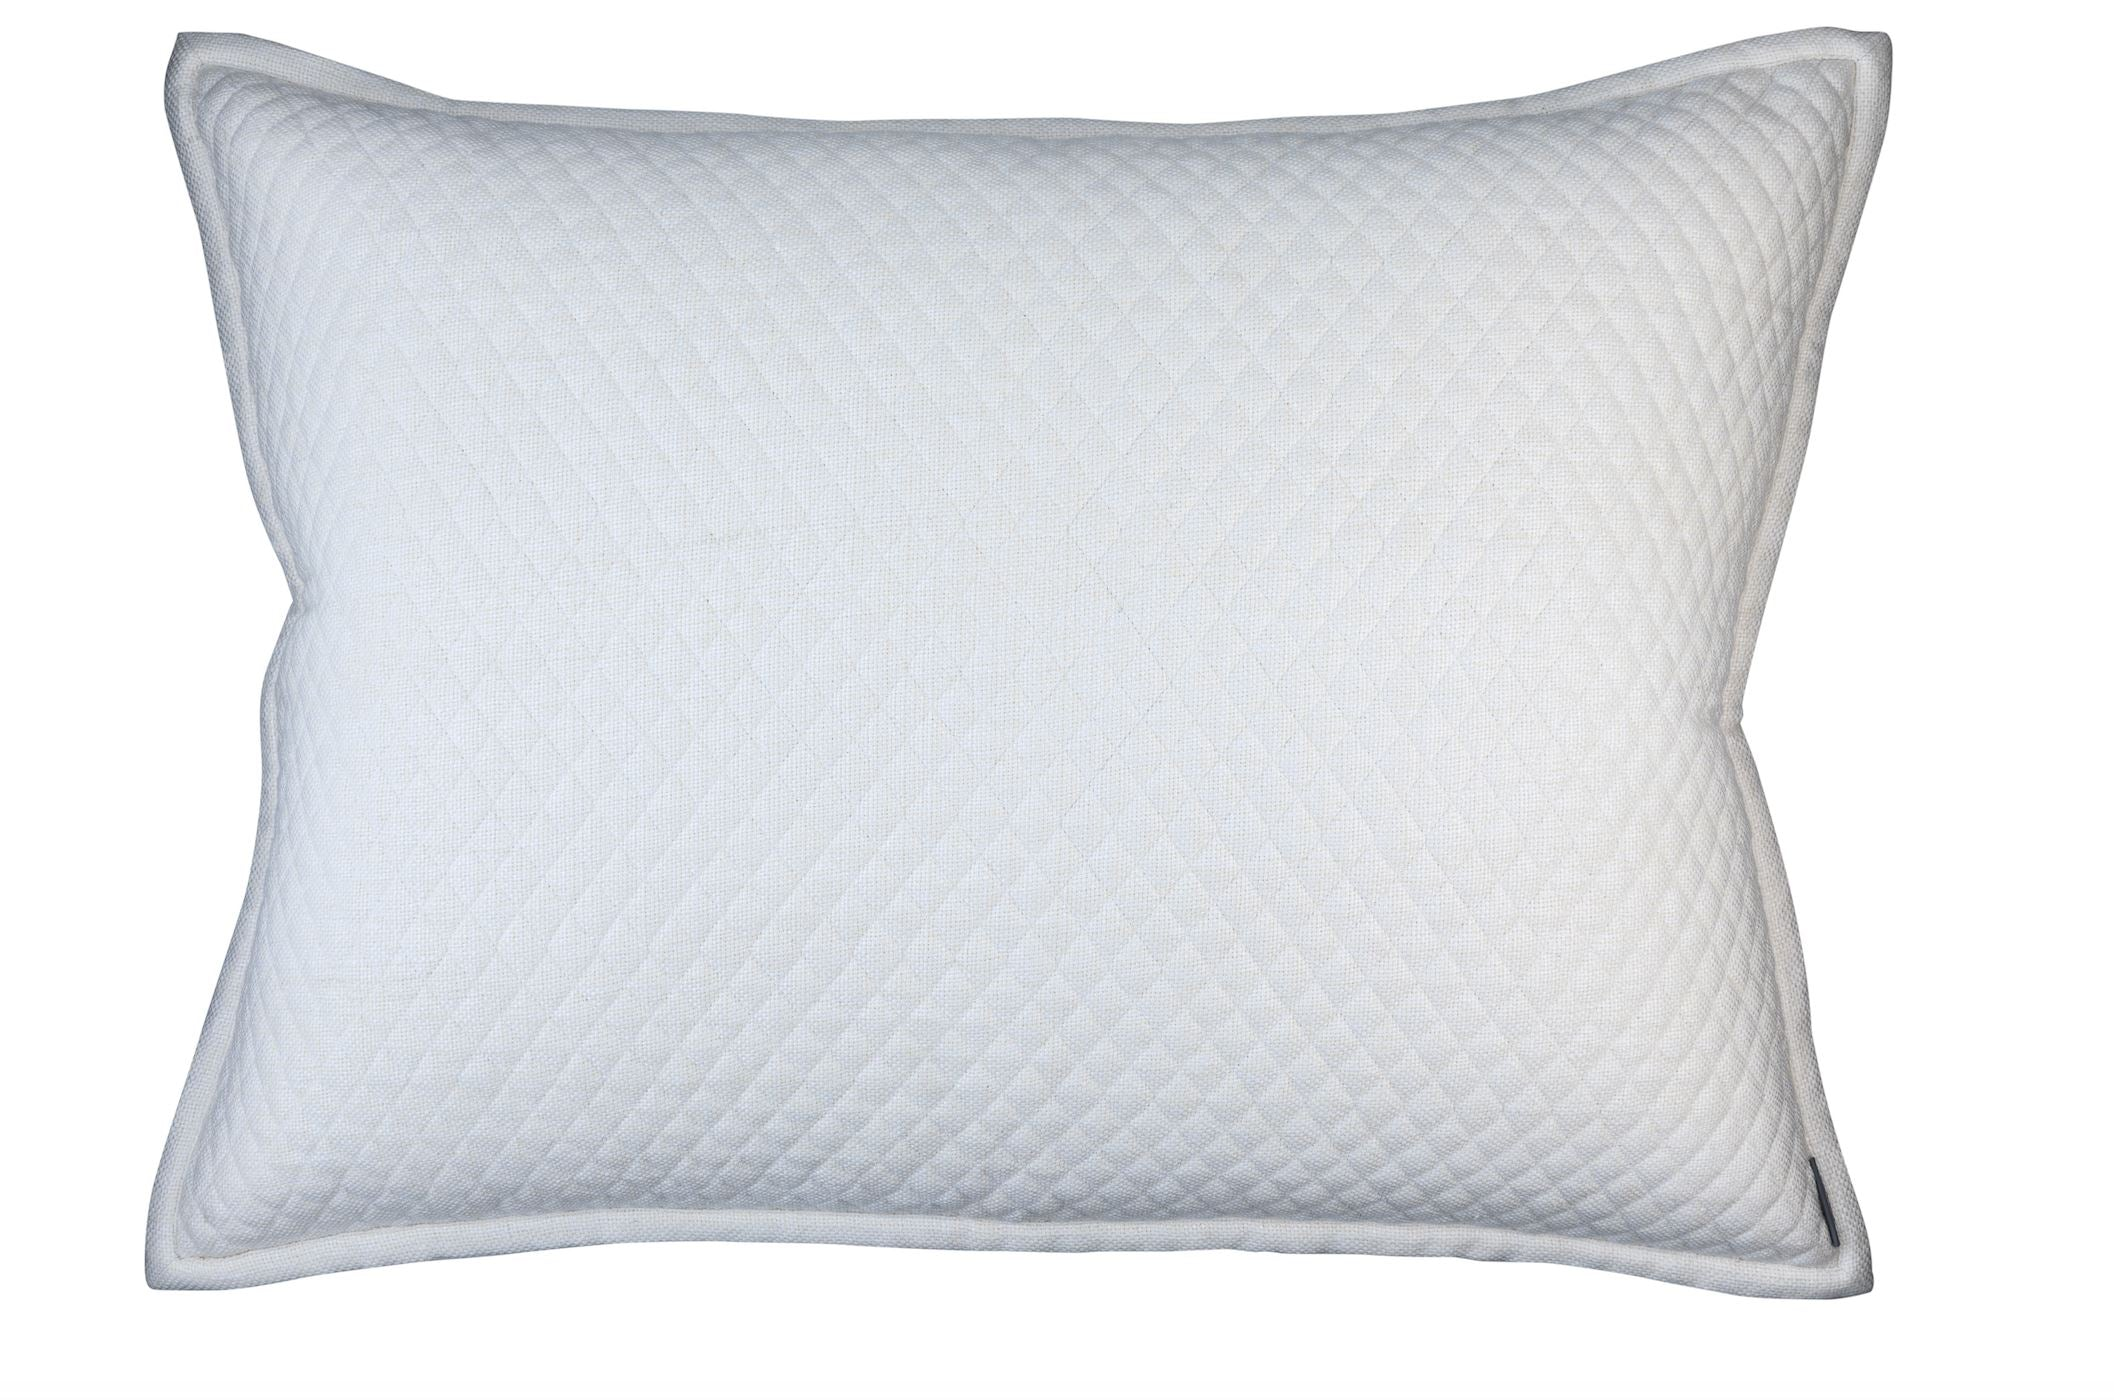 Lili Alessandra Laurie Quilted Ivory Basketweave Luxe Euro Pillow